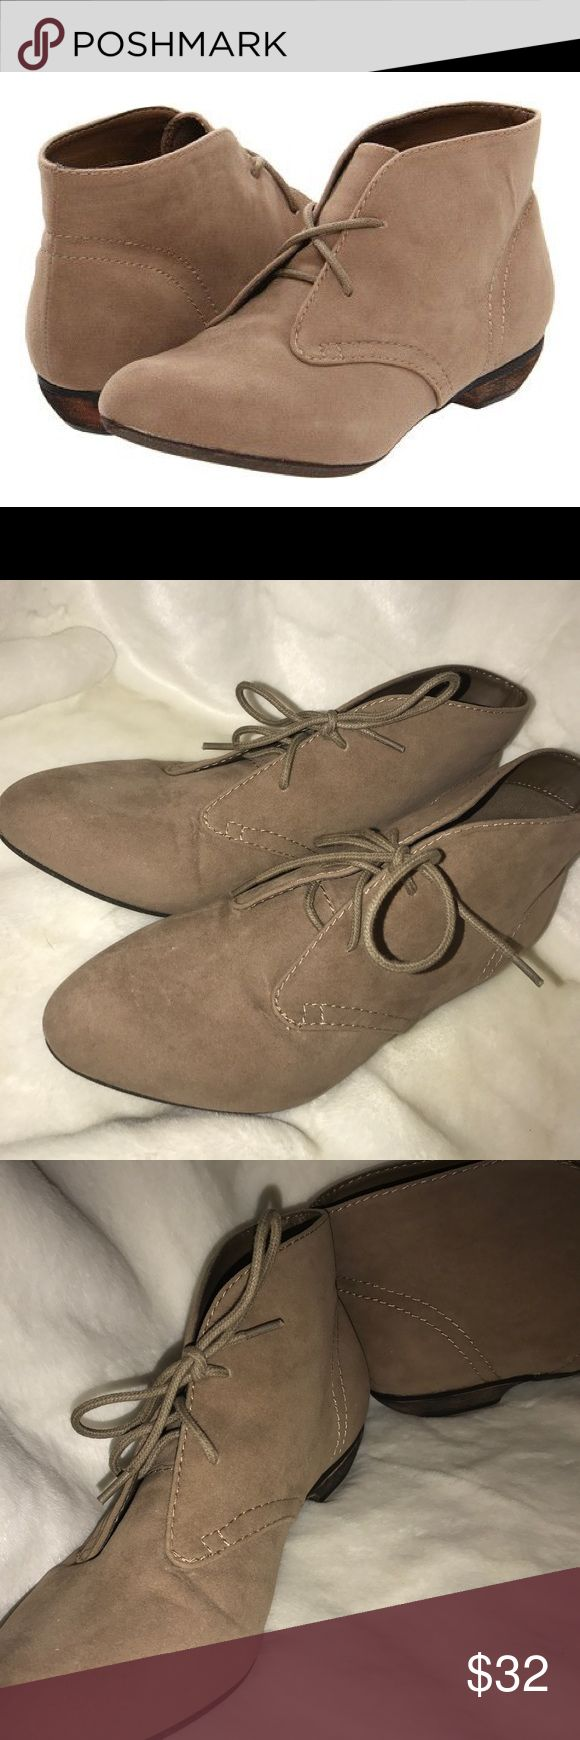 🆕Big Buddha Reese lace up shoes Super cute tan lace up shoes. Never worn. Size 8.5. Big Buddha Shoes